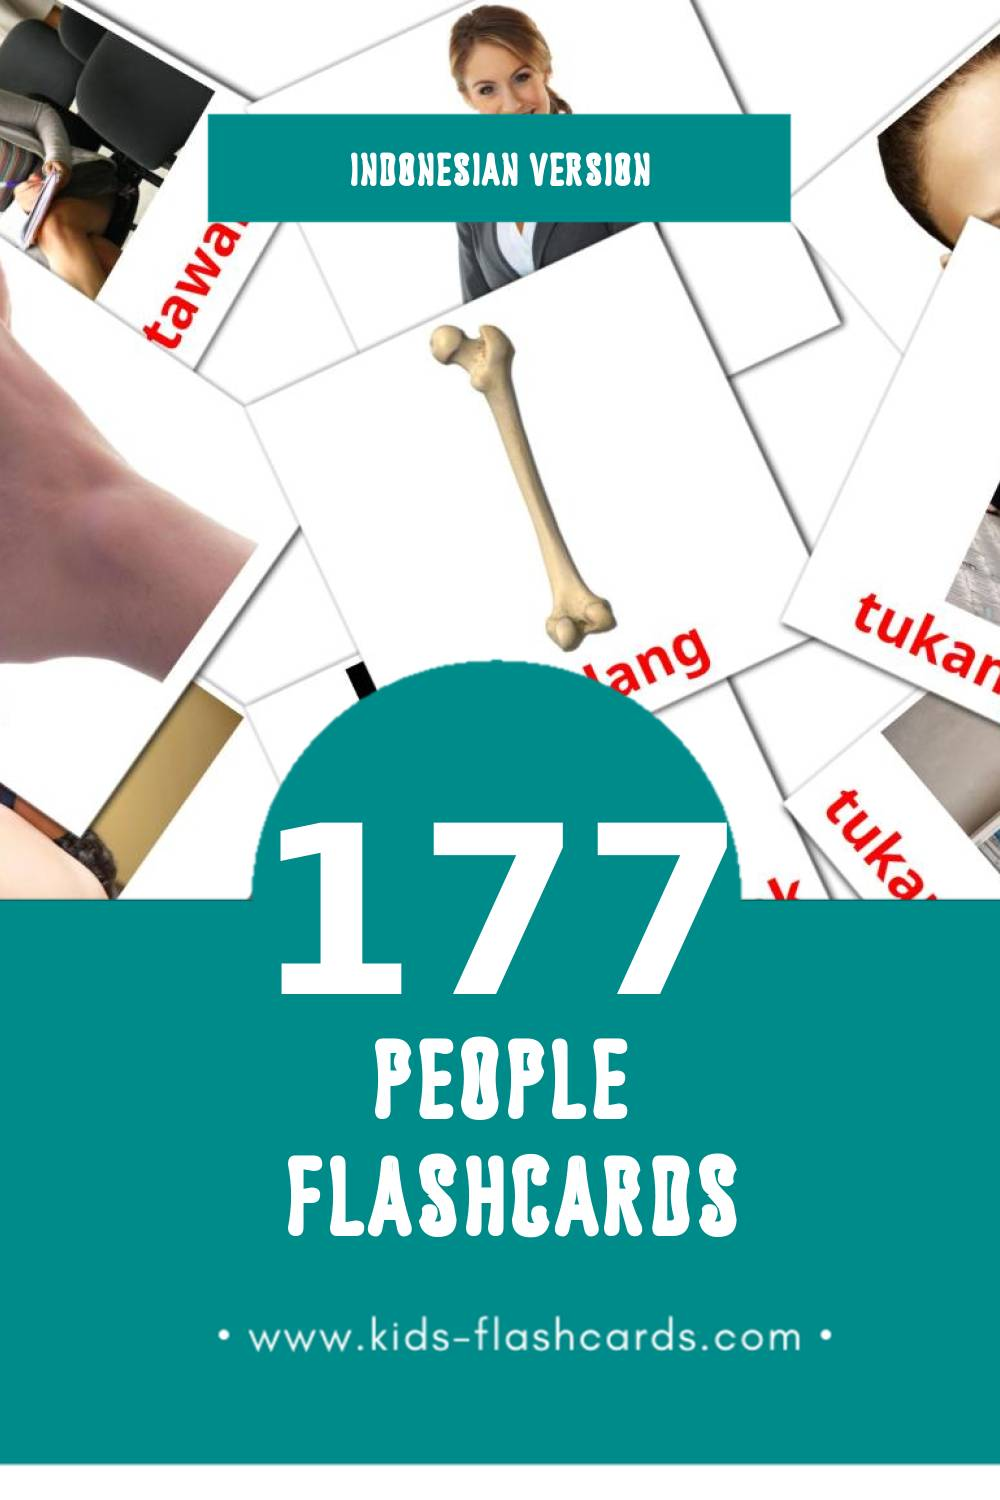 Visual Manusia Flashcards for Toddlers (58 cards in Indonesian)